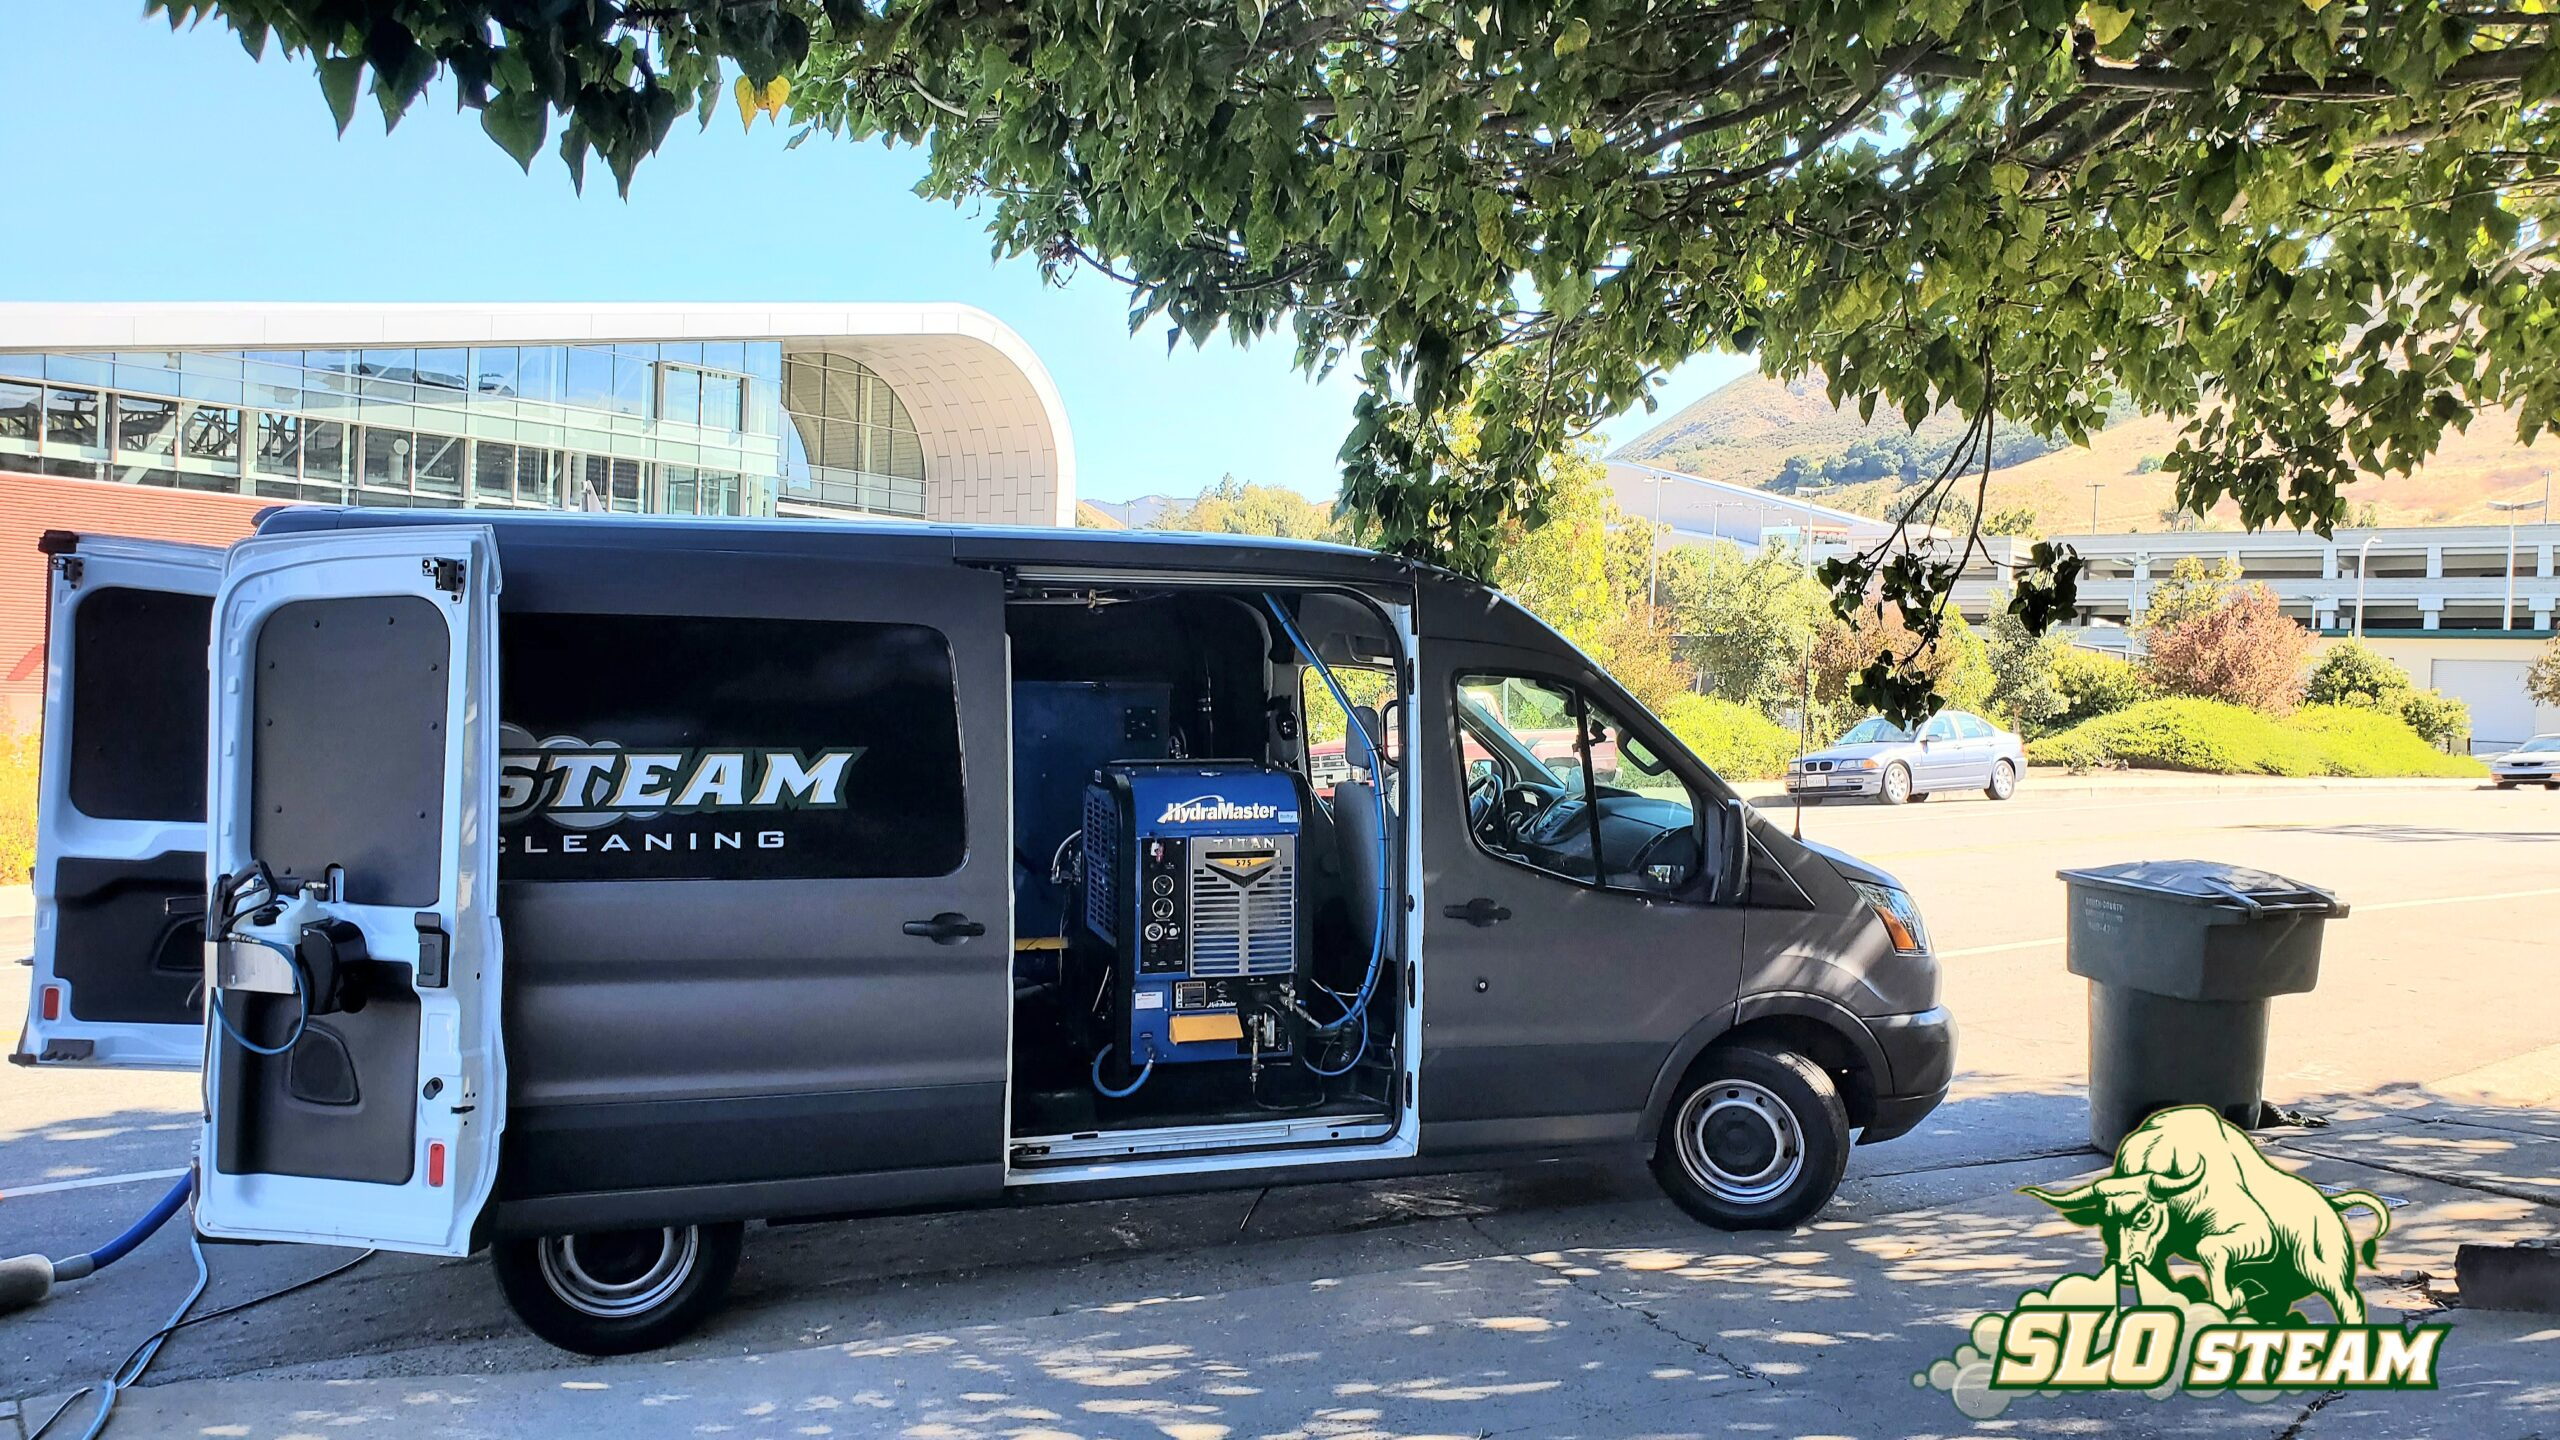 carpet cleaning van across the street from cal poly campus San Luis Obispo